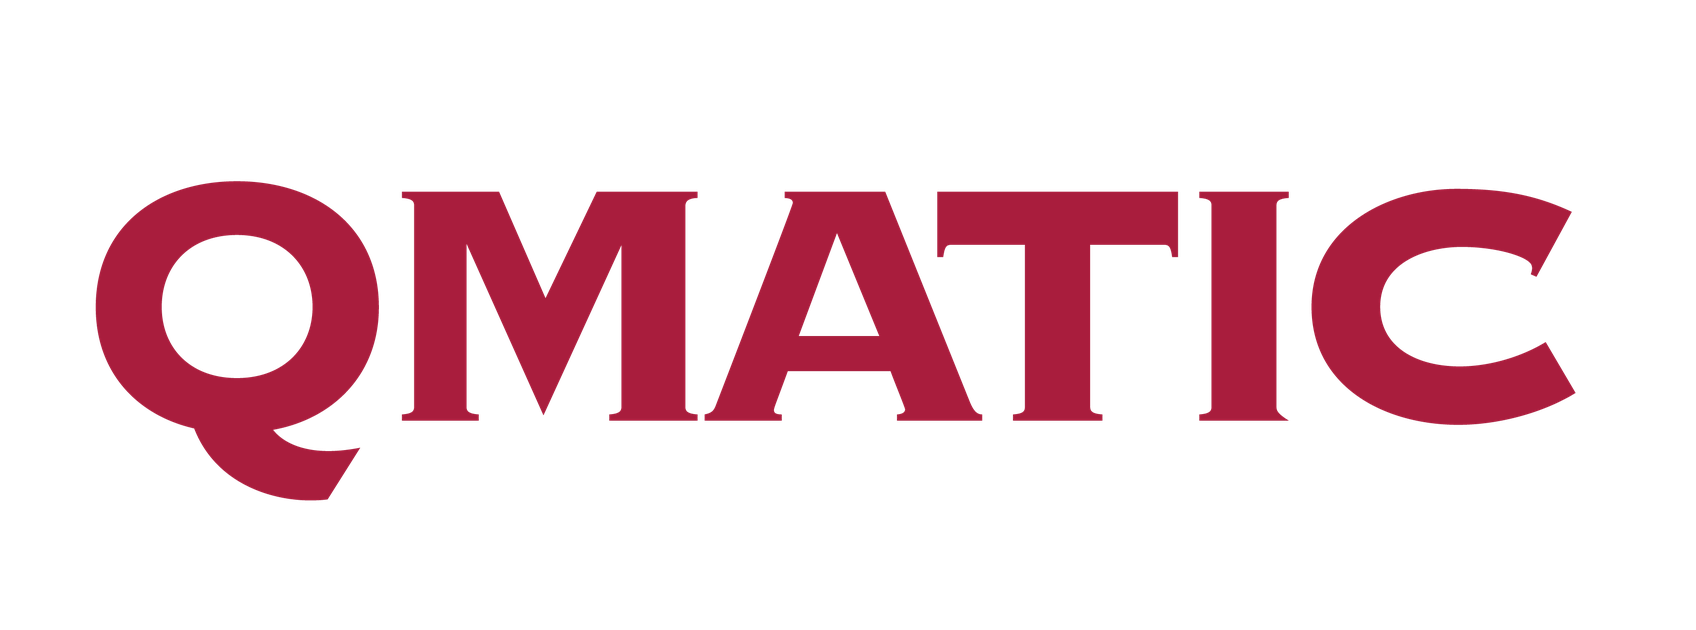 Qmatic Group